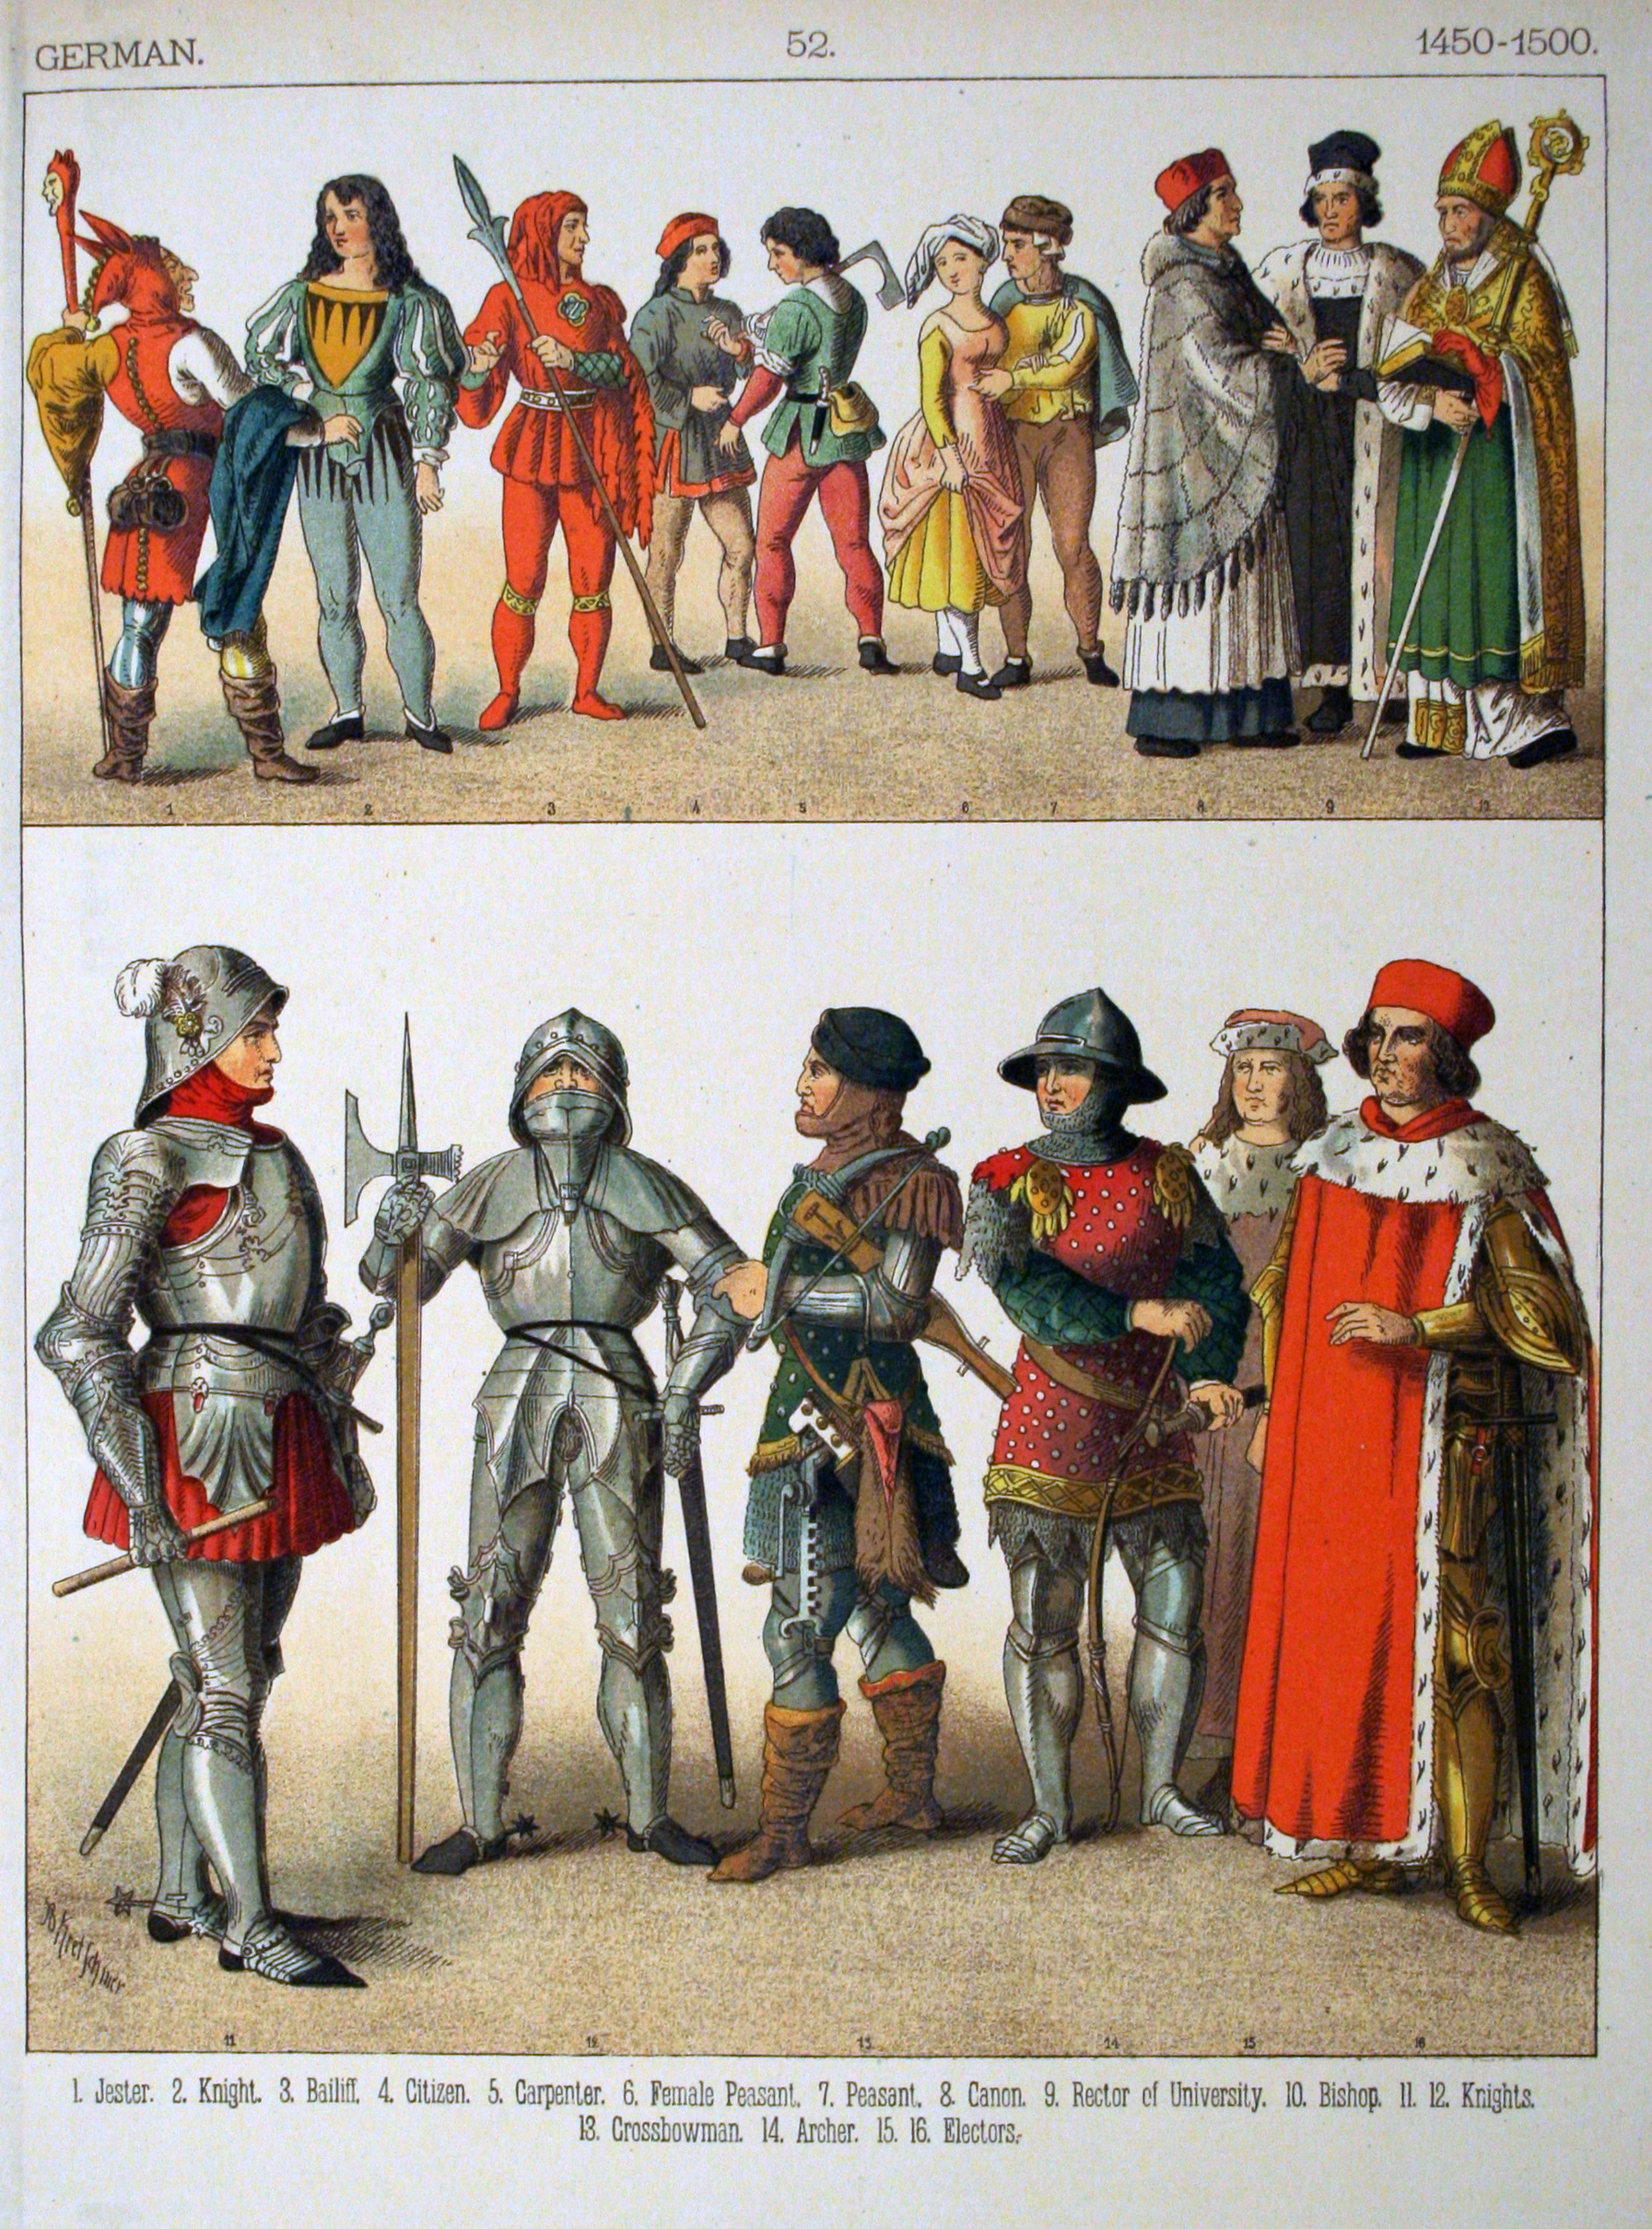 File:1450-1500, German - 052 - Costumes of All Nations (1882